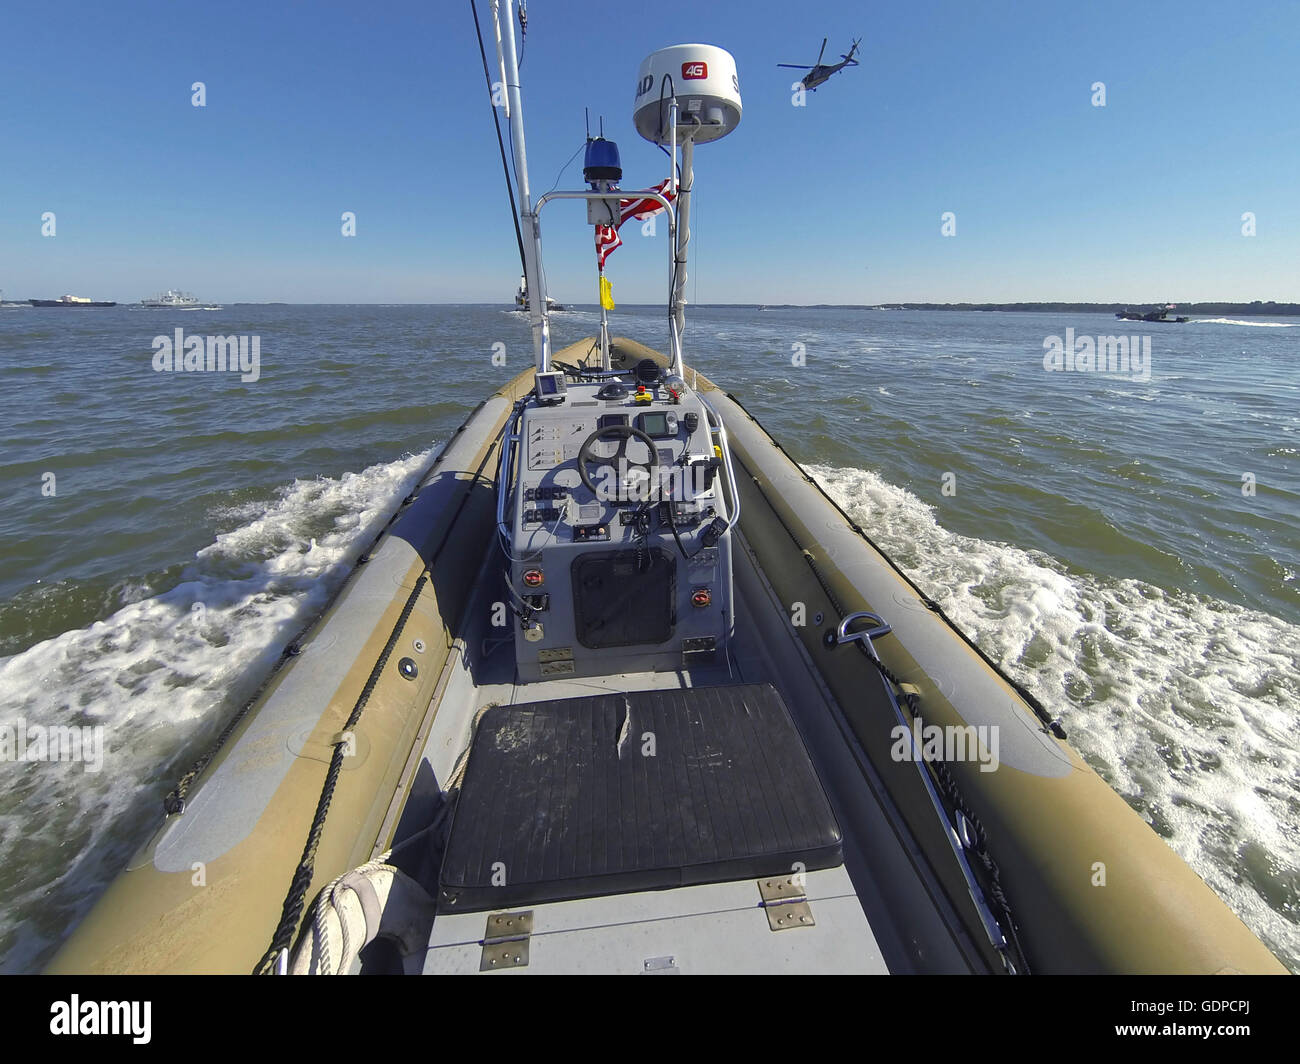 August 14, 2014 - An unmanned seven-meter rigid-hull inflatable boat operates autonomously on the James River in - Stock Image